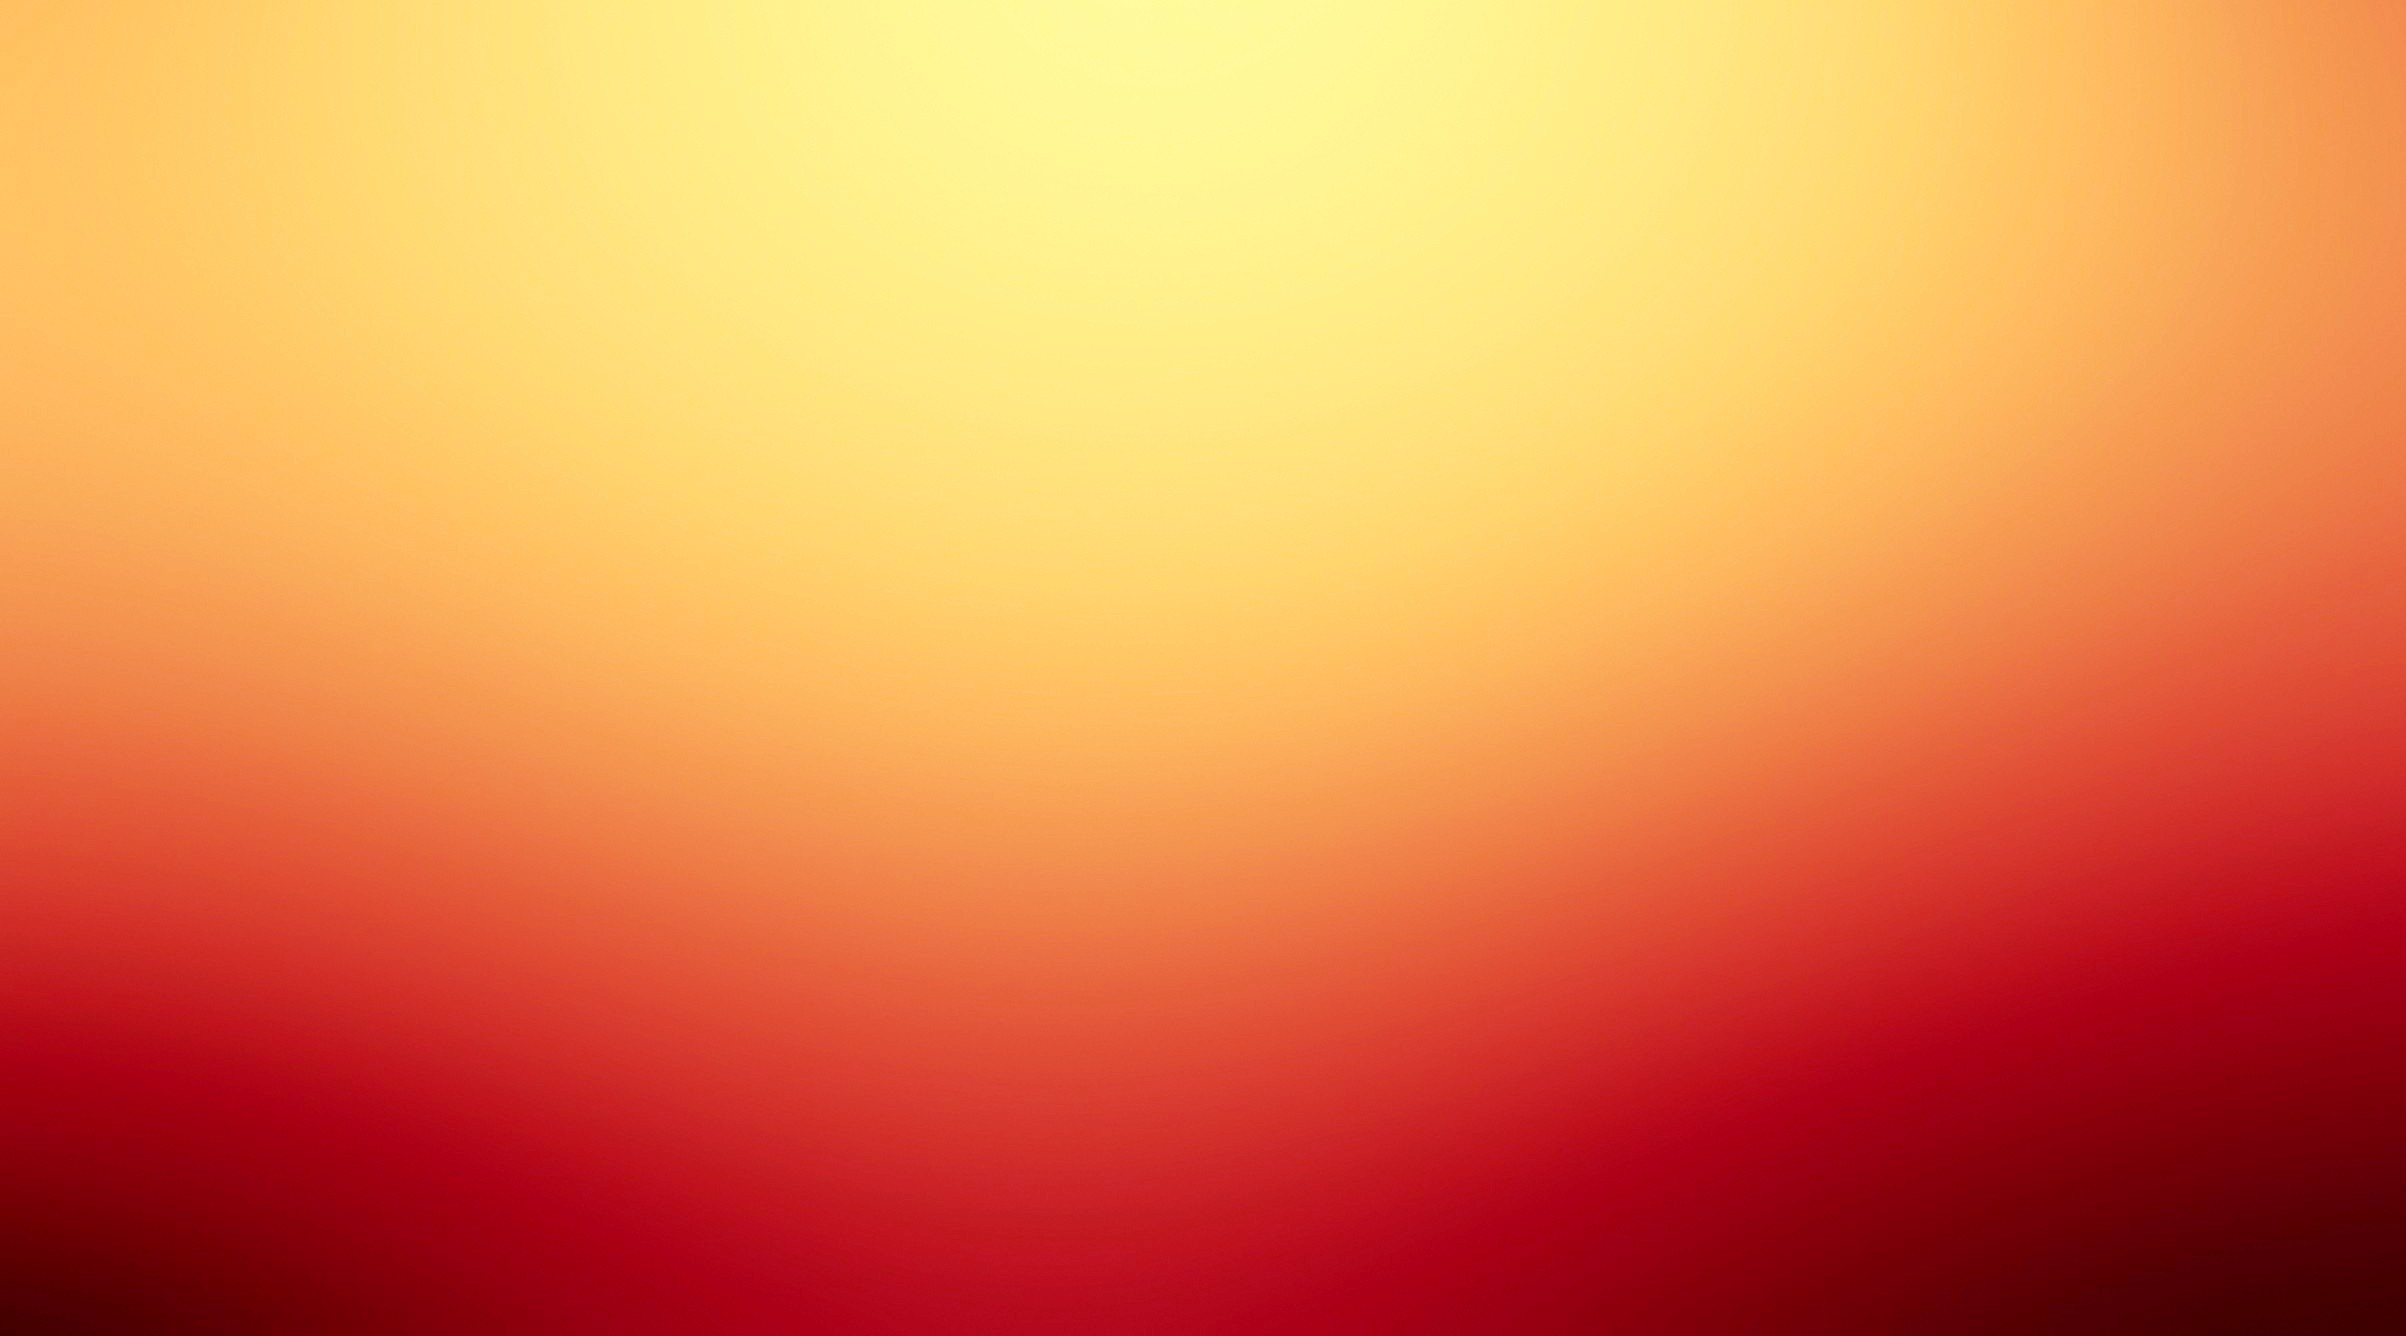 Yellow And Dark Pink Red Background  Free Images at Clker